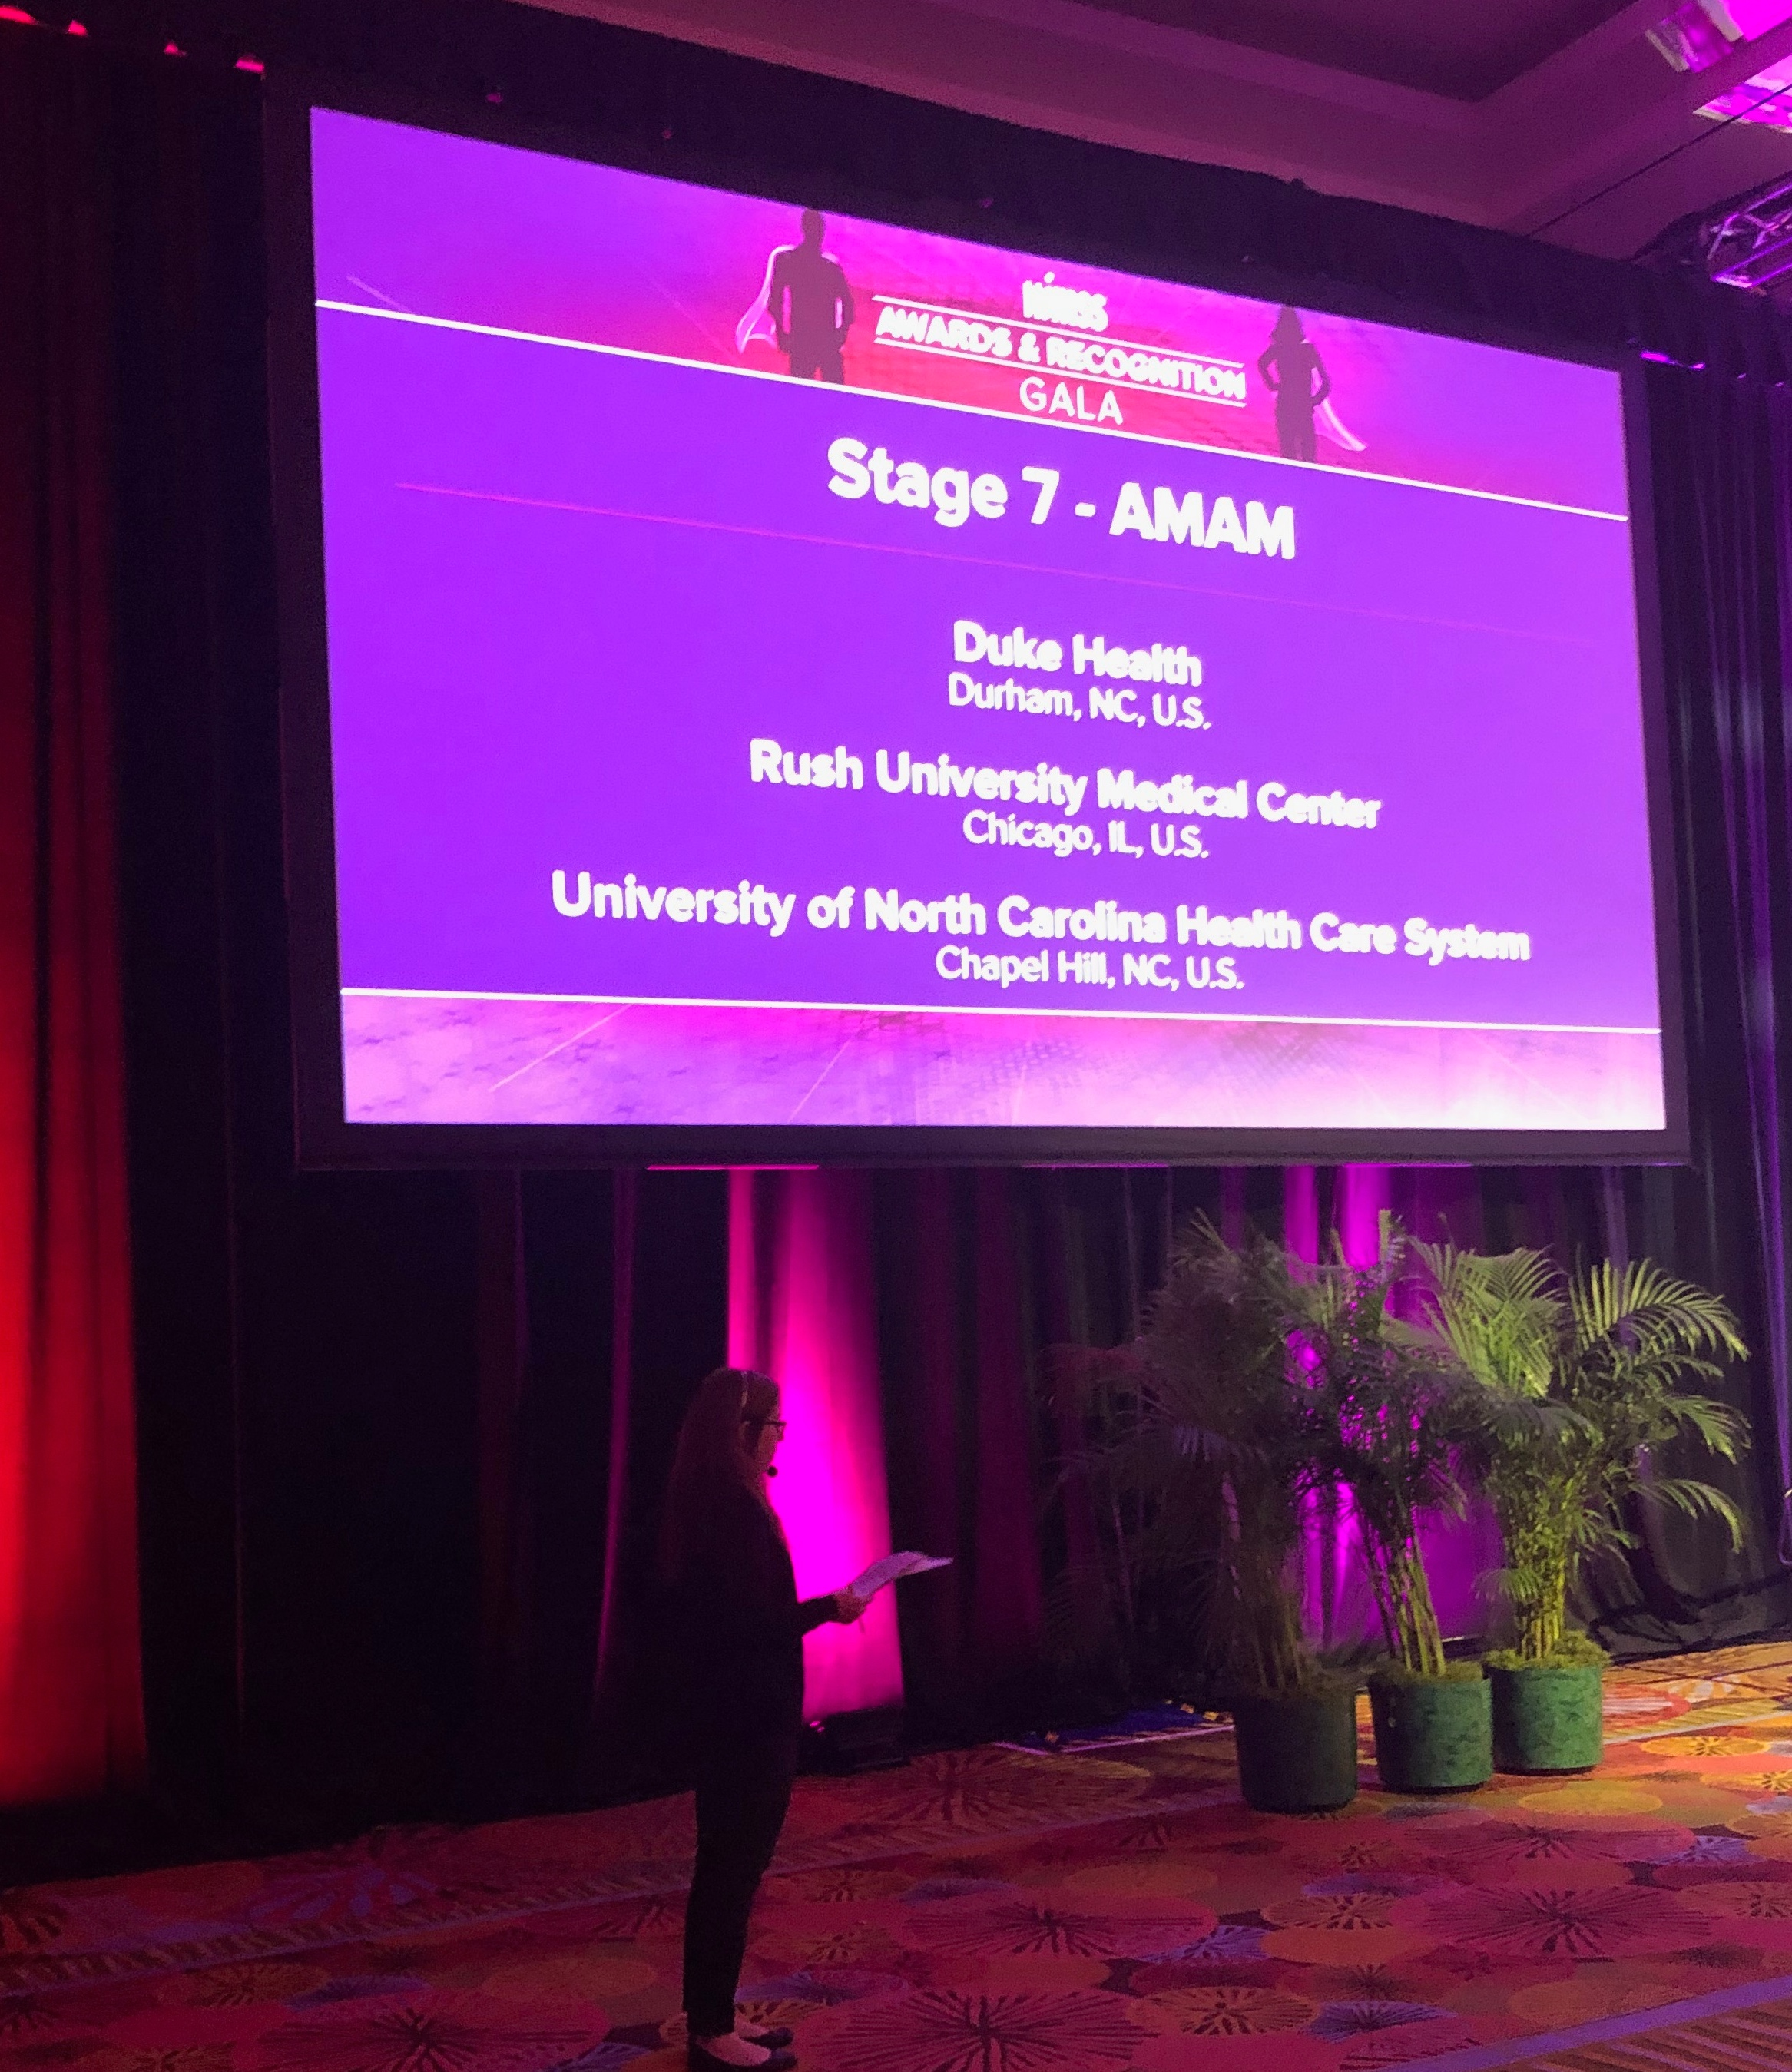 The world's first AMAM Stage 7 organizations